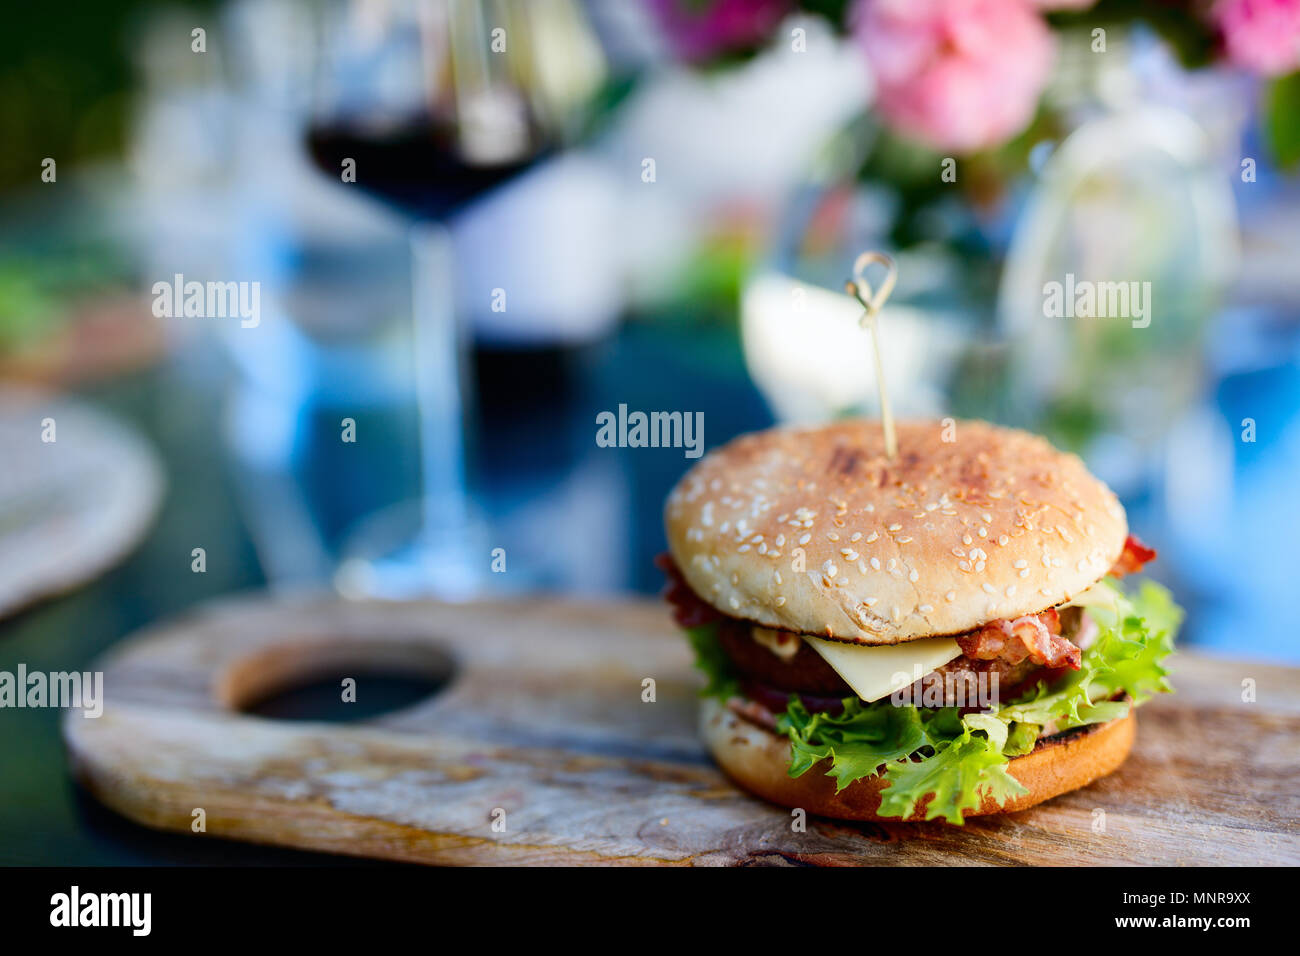 Close up of delicious fresh burger with cheese and bacon - Stock Image